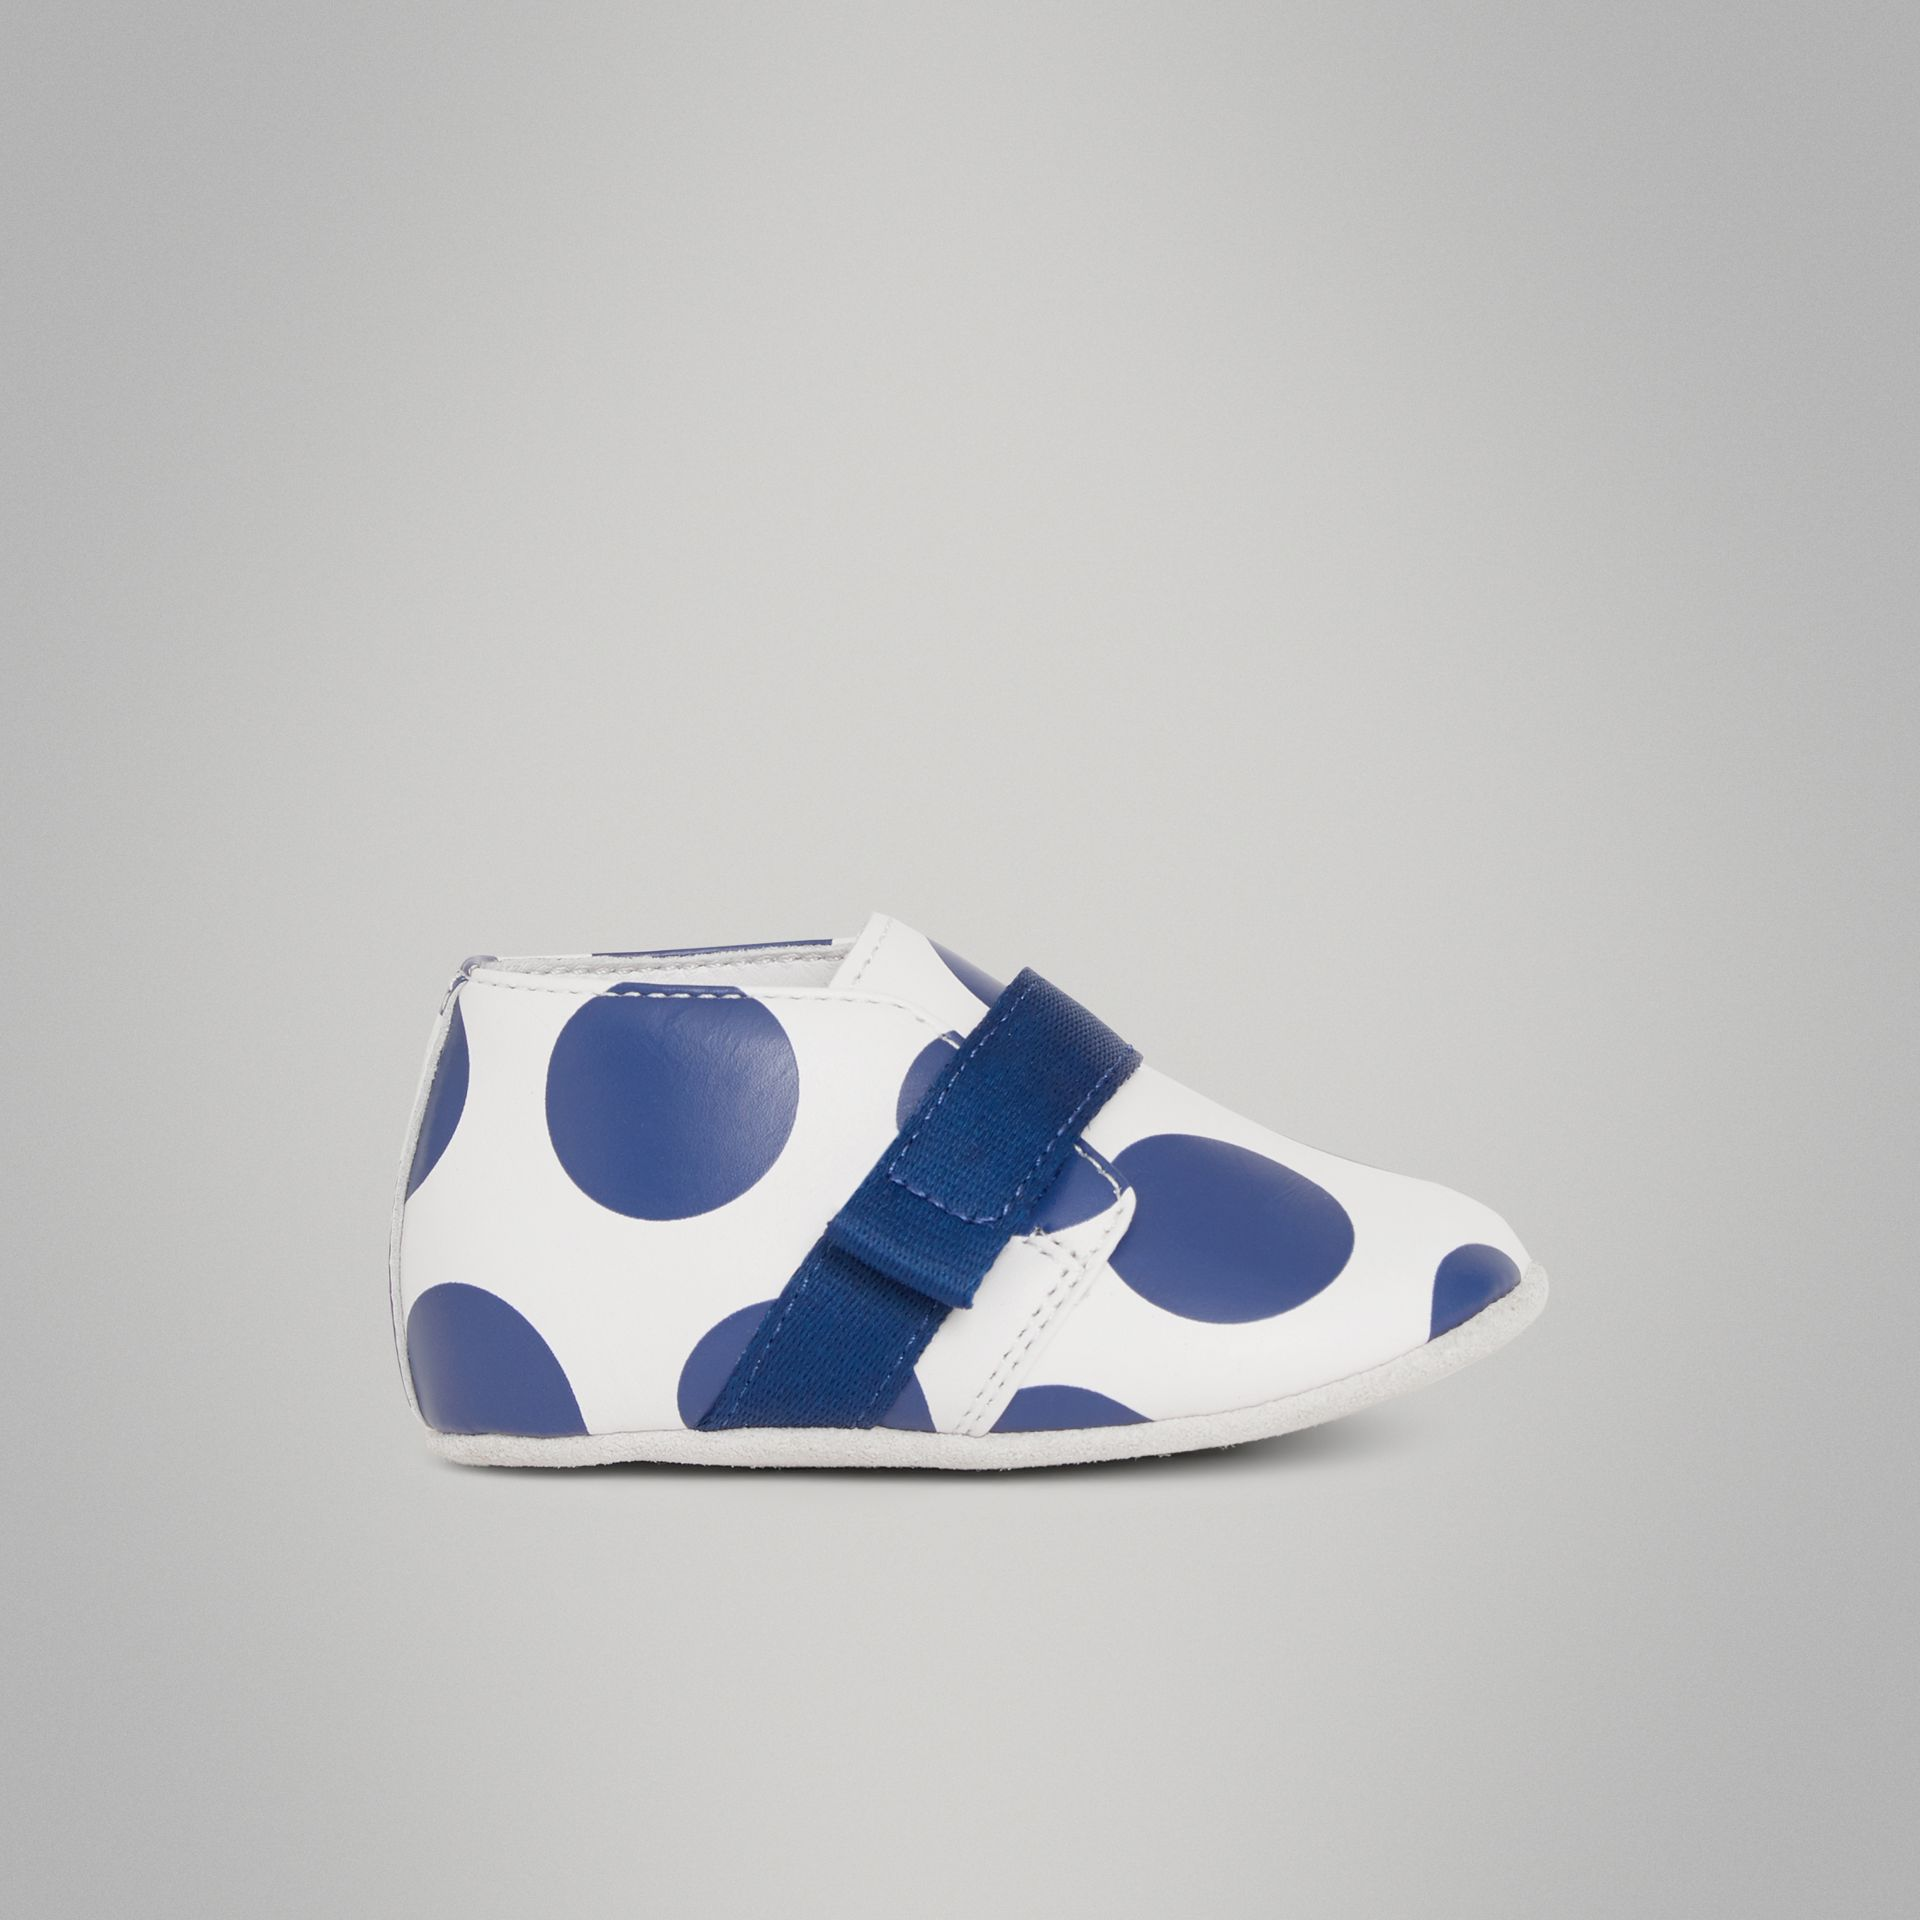 Spot Print Leather Shoes in Bright Blue - Children | Burberry Australia - gallery image 3